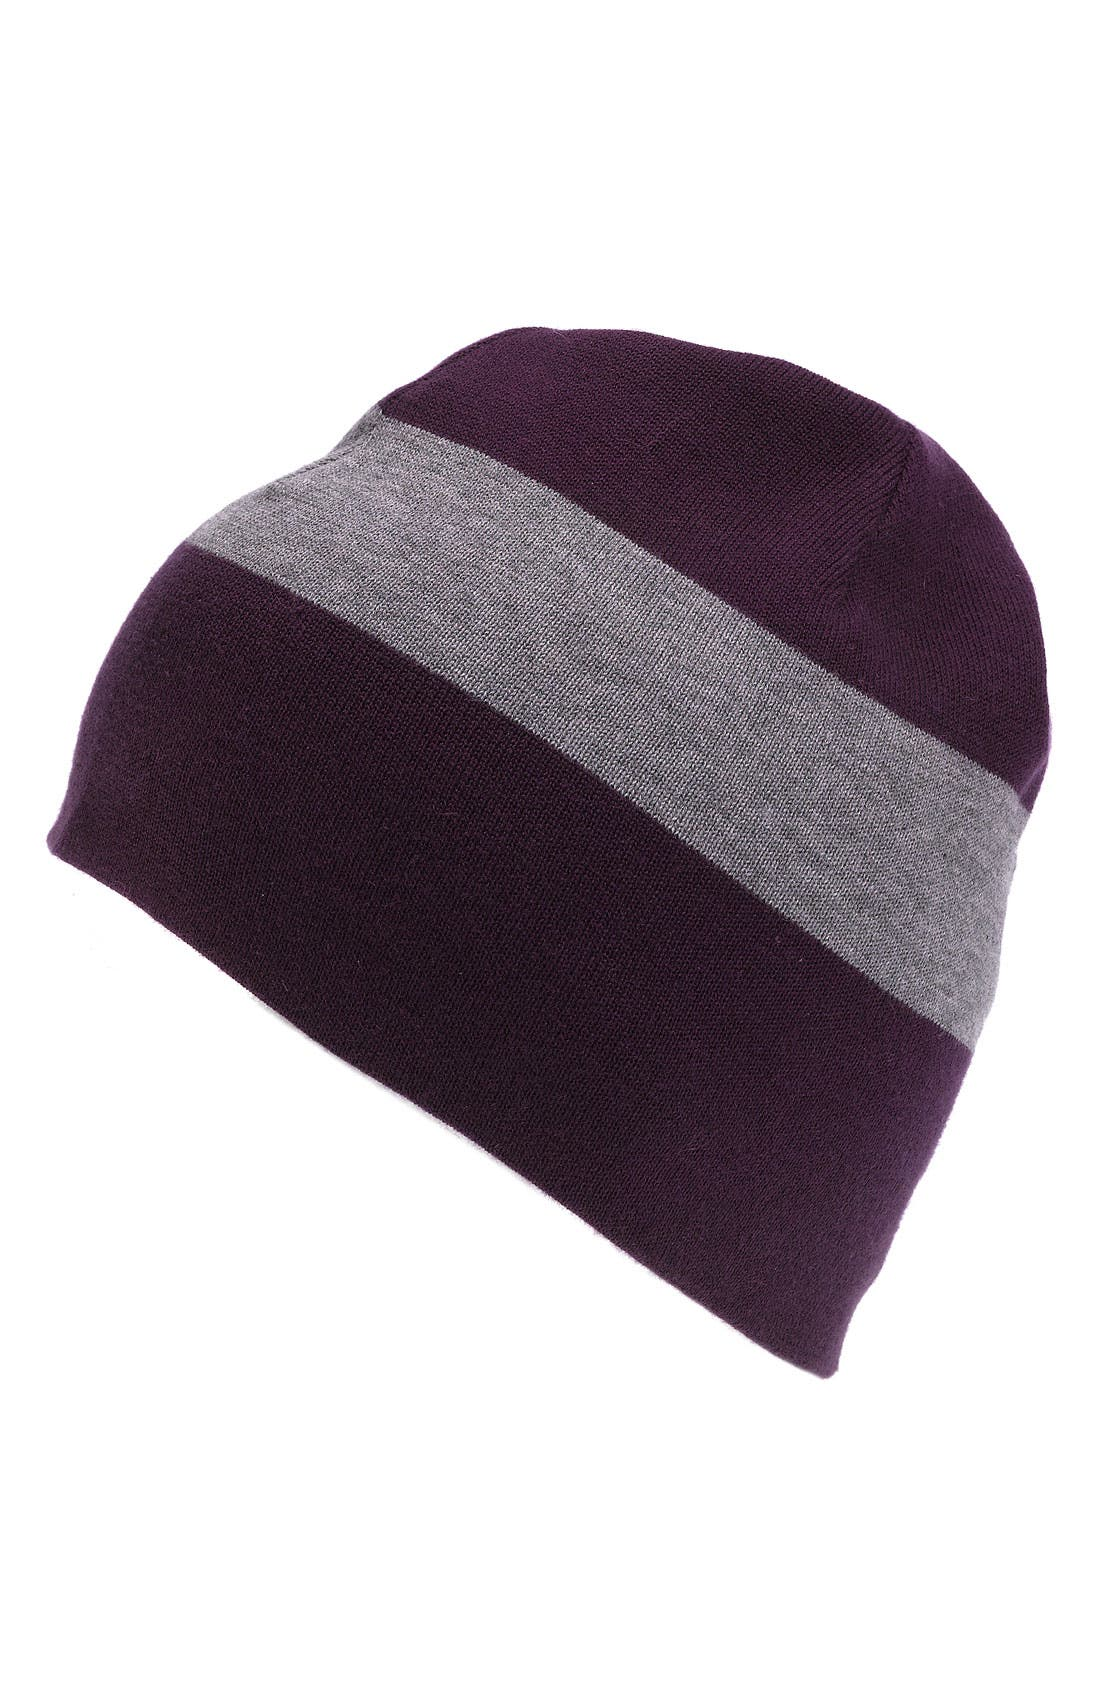 Alternate Image 1 Selected - Brooks Brothers 'Rugby Stripe' Hat